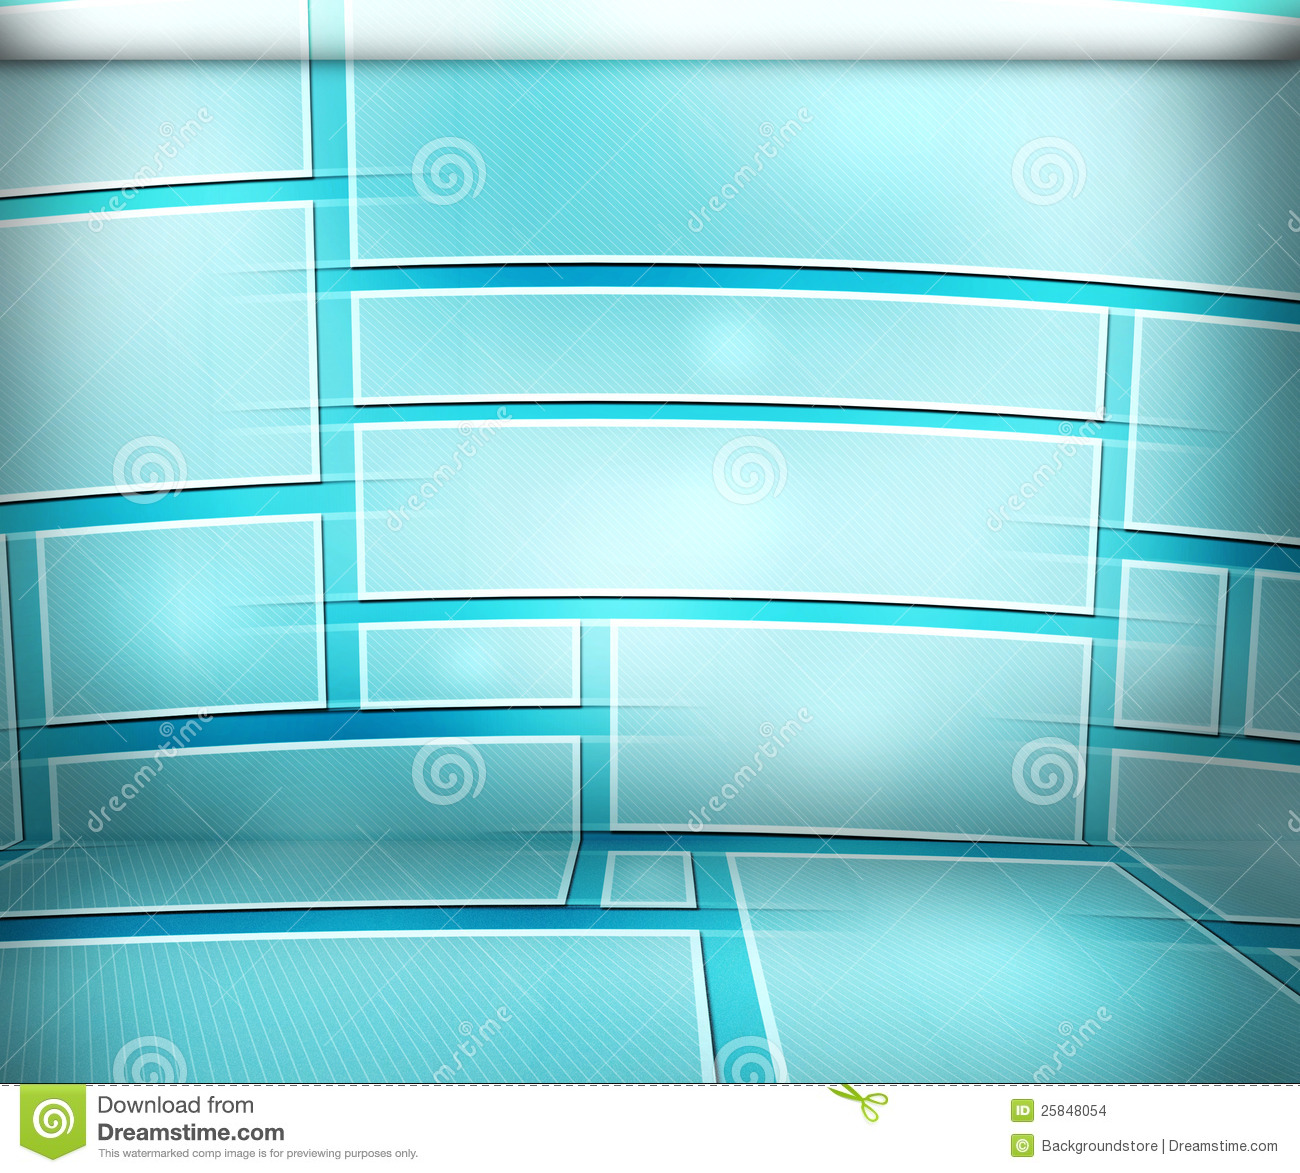 Room Background: Blue Virtual Room Background Stock Photo